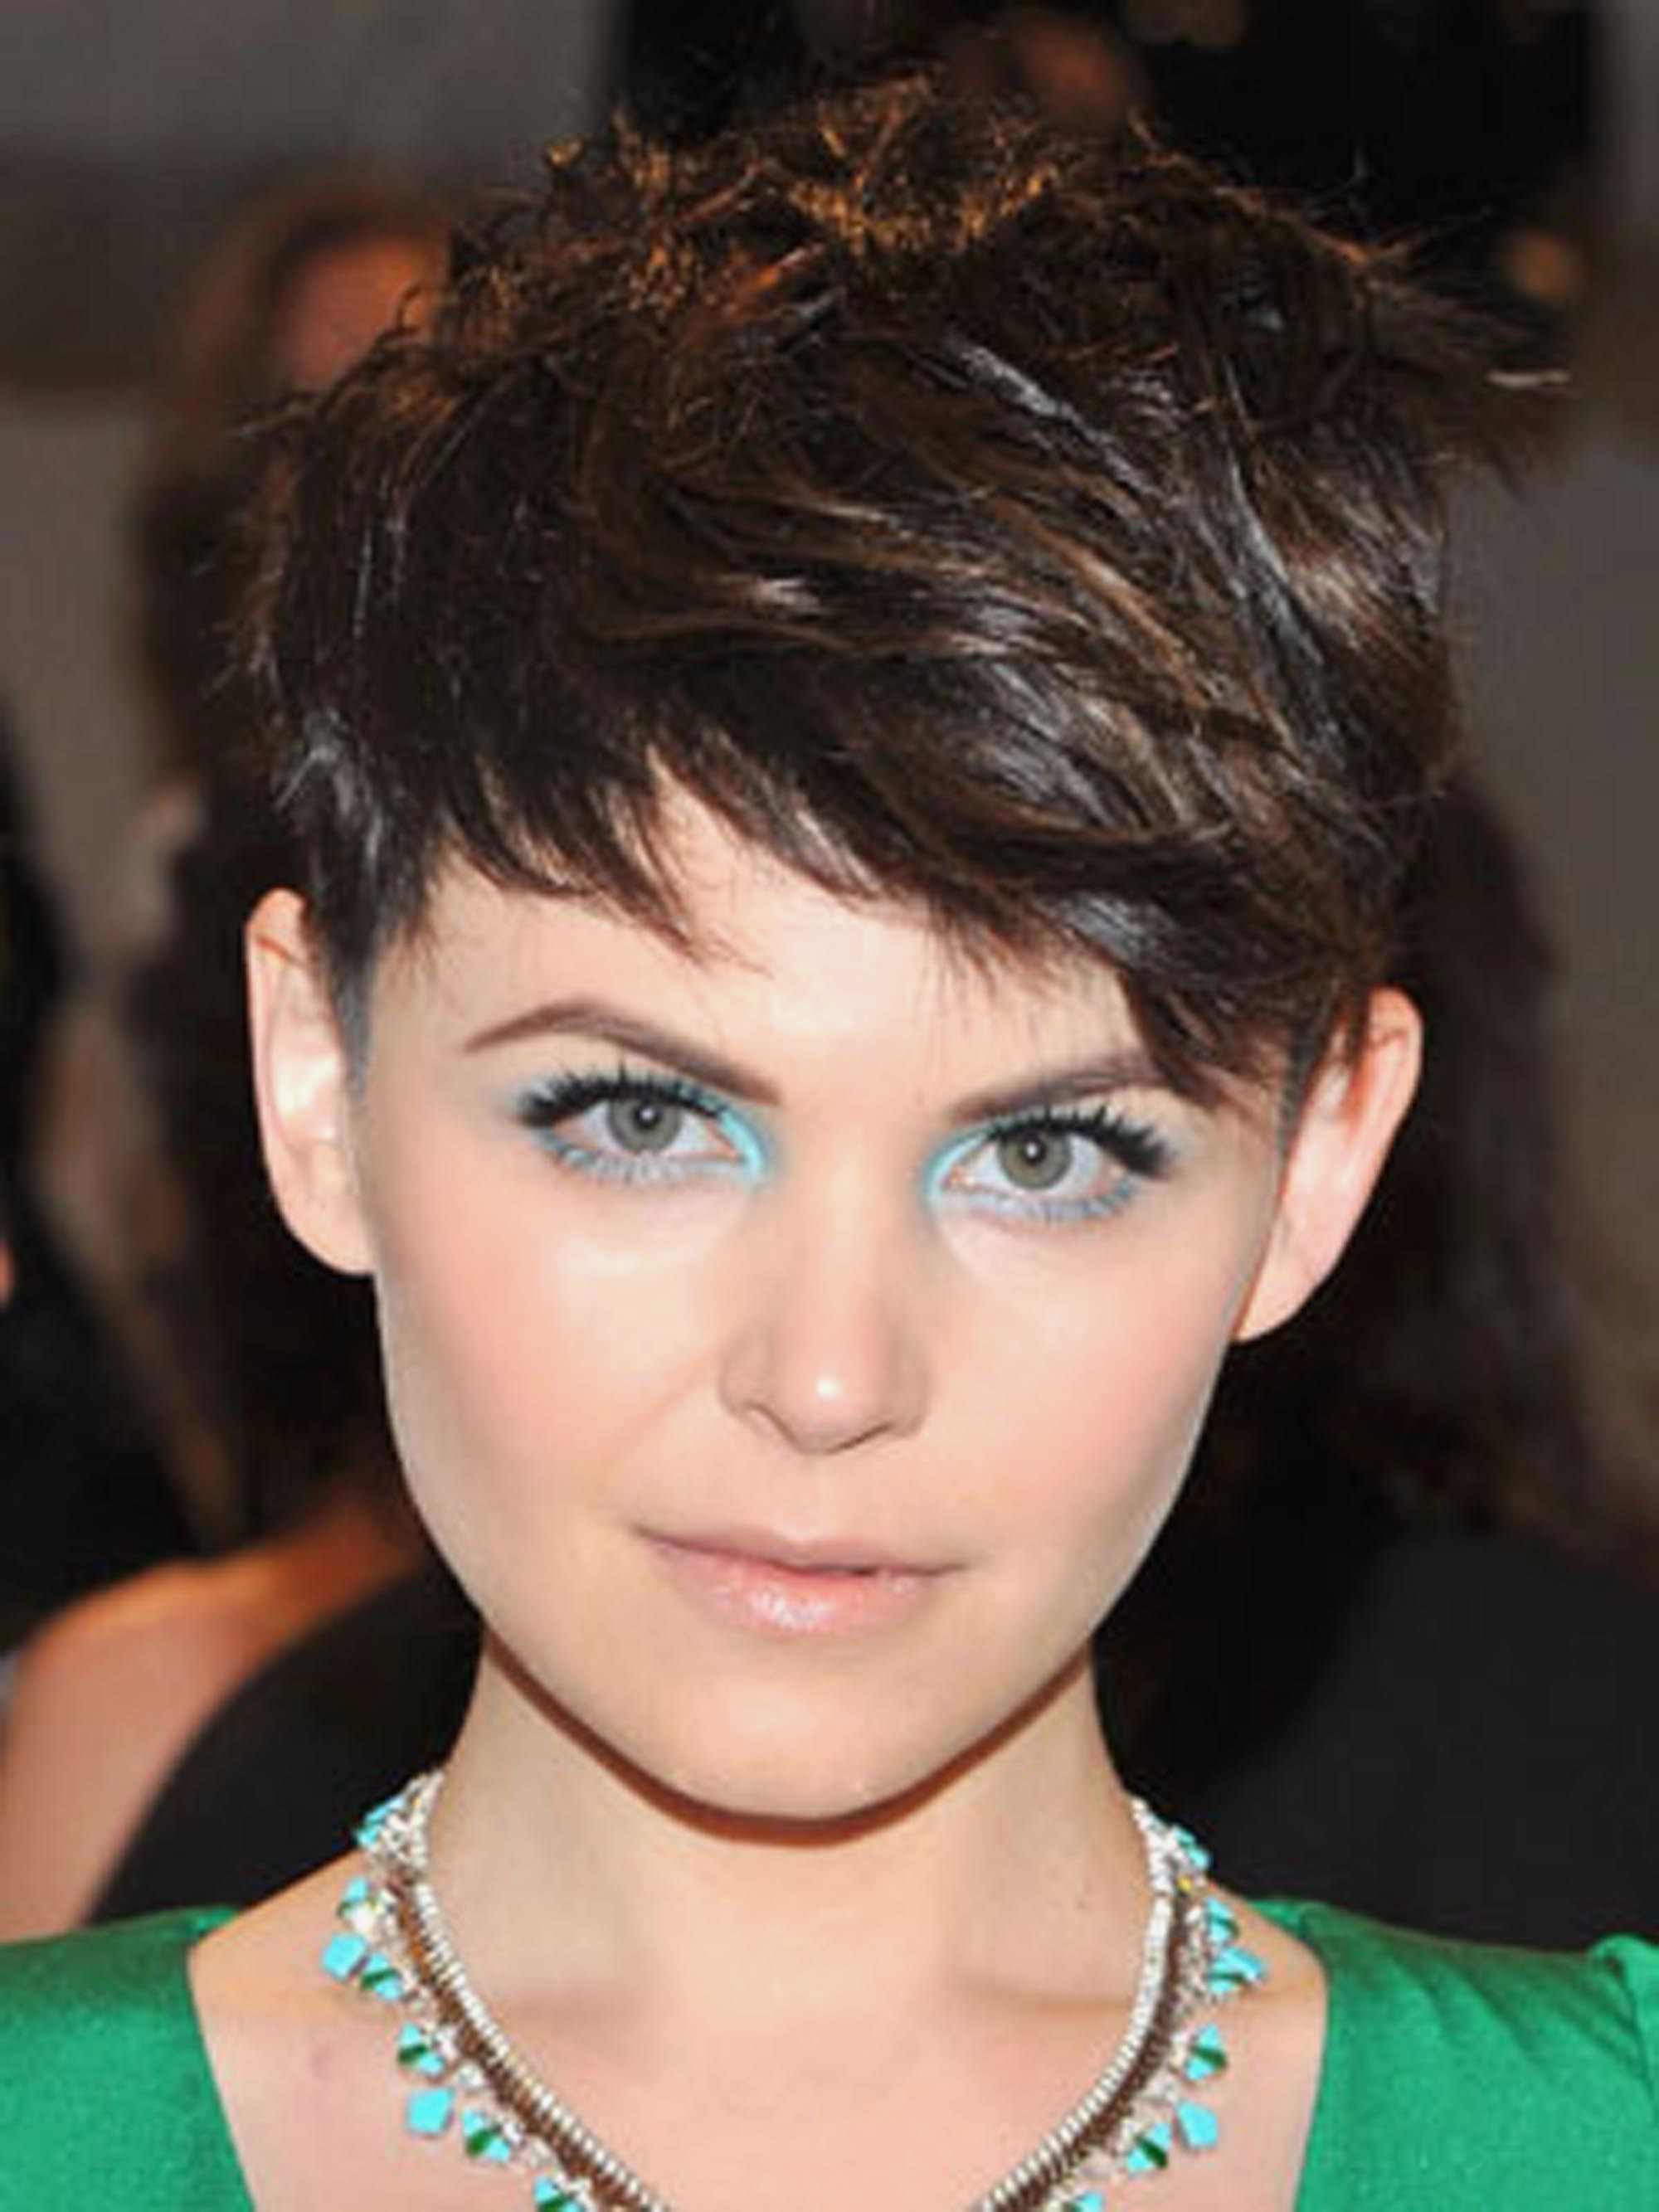 Curly Hairstyles : New Pixie Short Curly Hairstyles Photo To 2018 Regarding 2018 Pixie Hairstyles For Curly Hair (View 11 of 15)